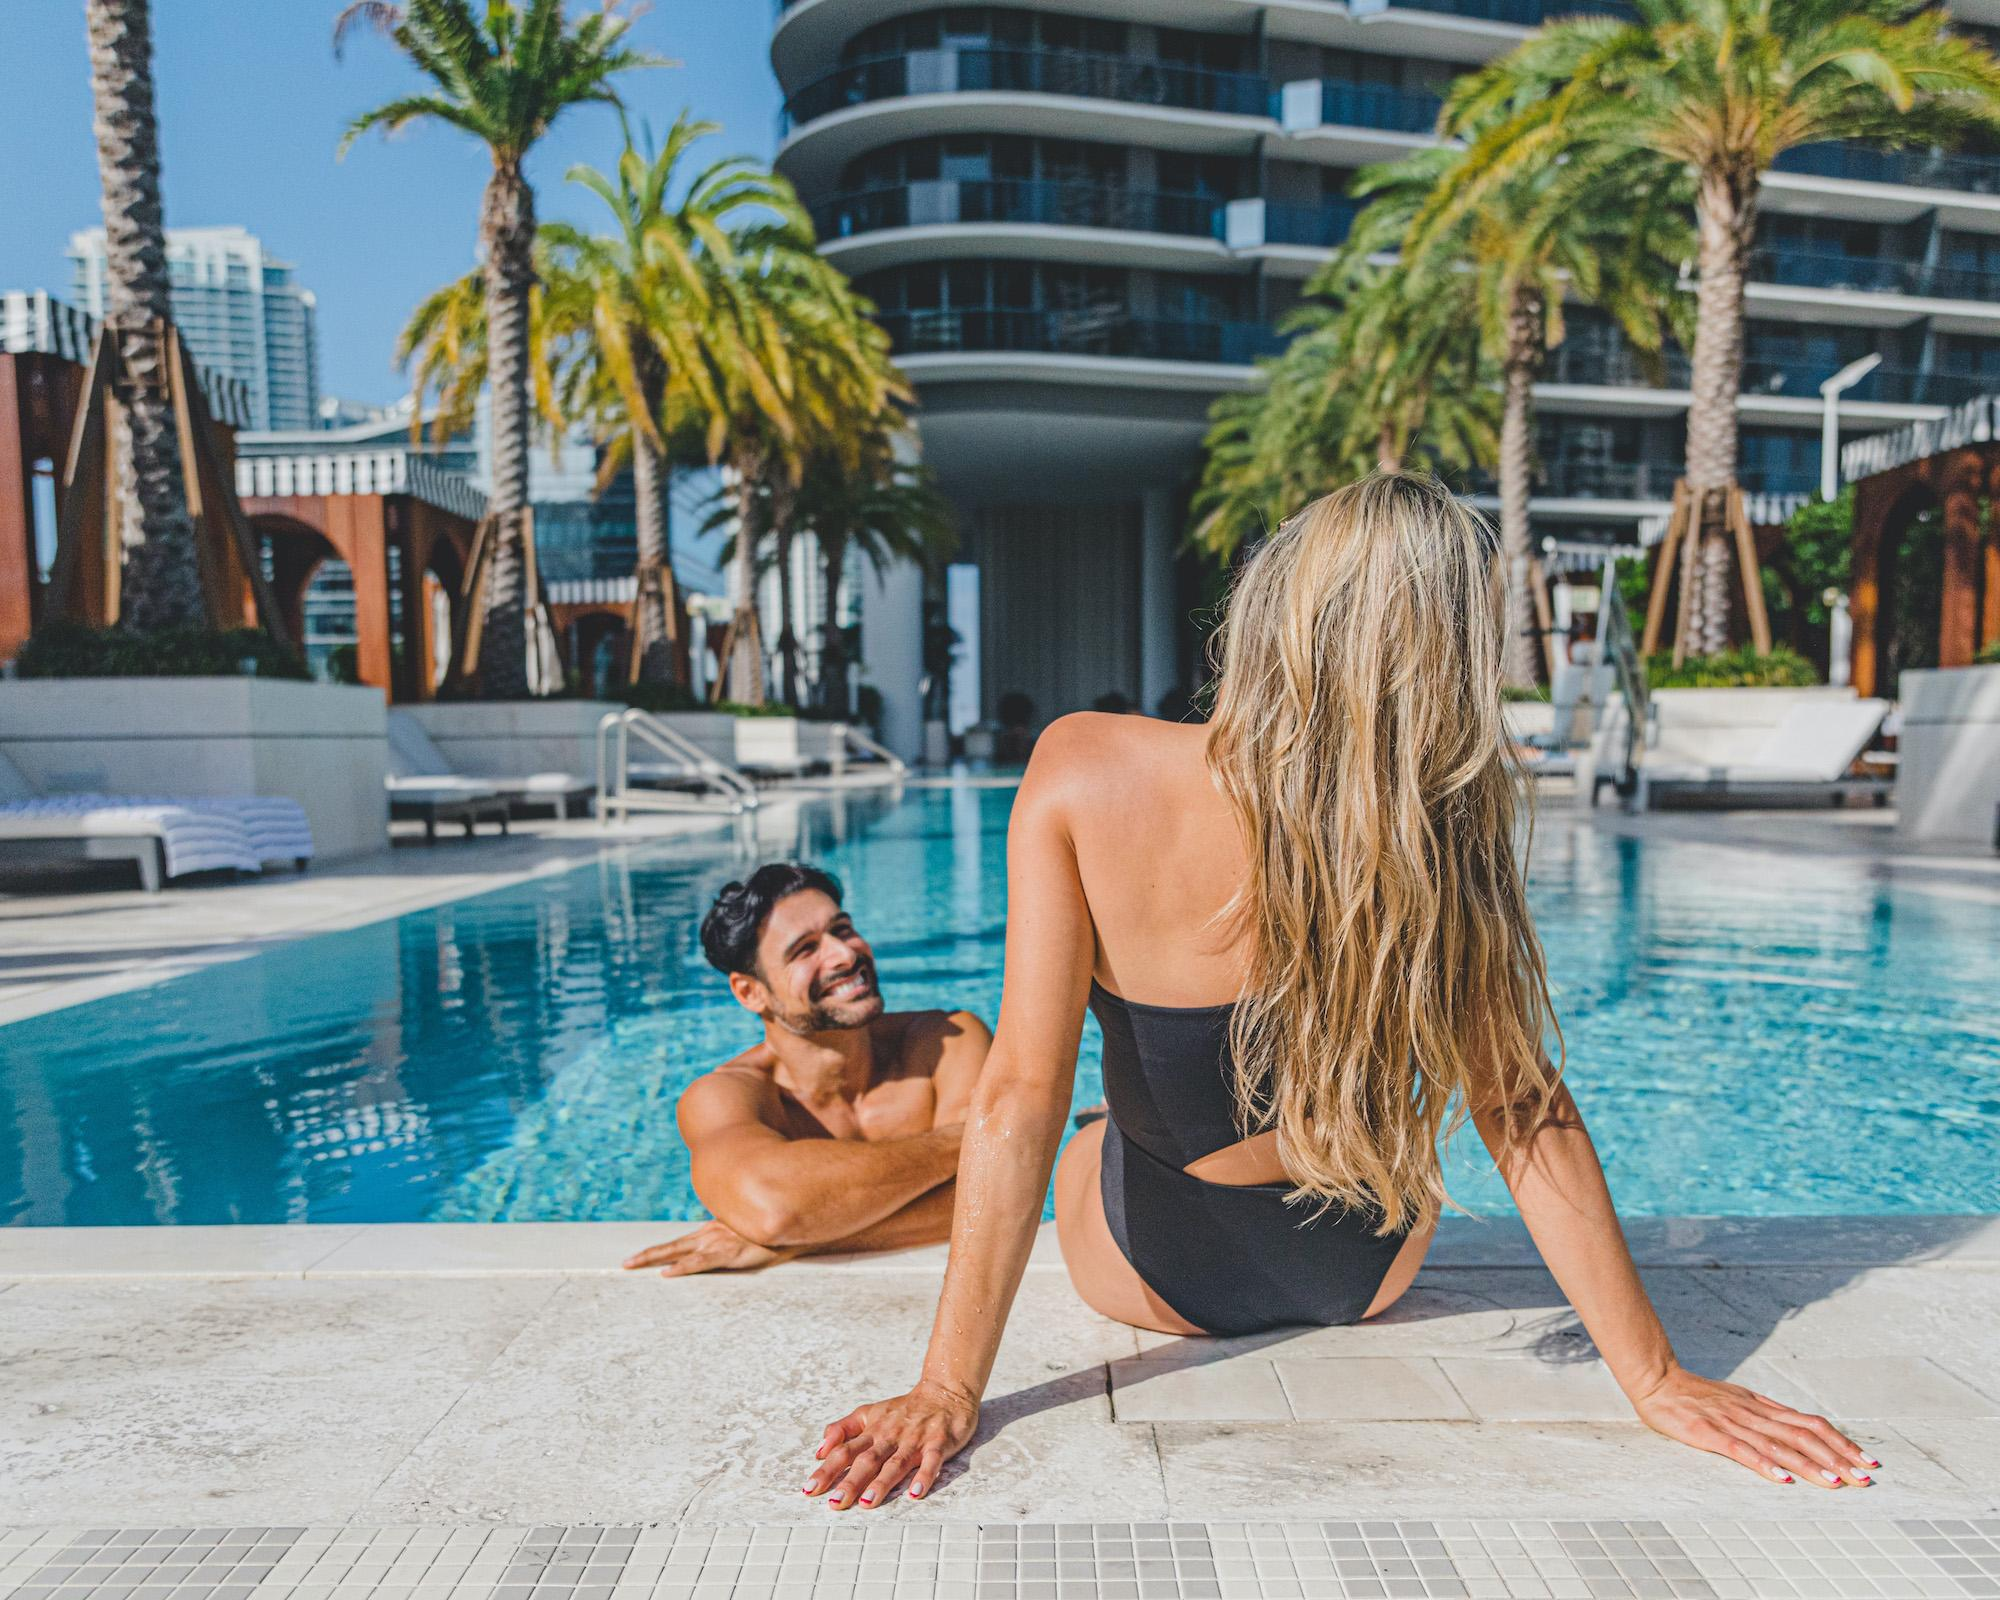 man and woman smiling poolside